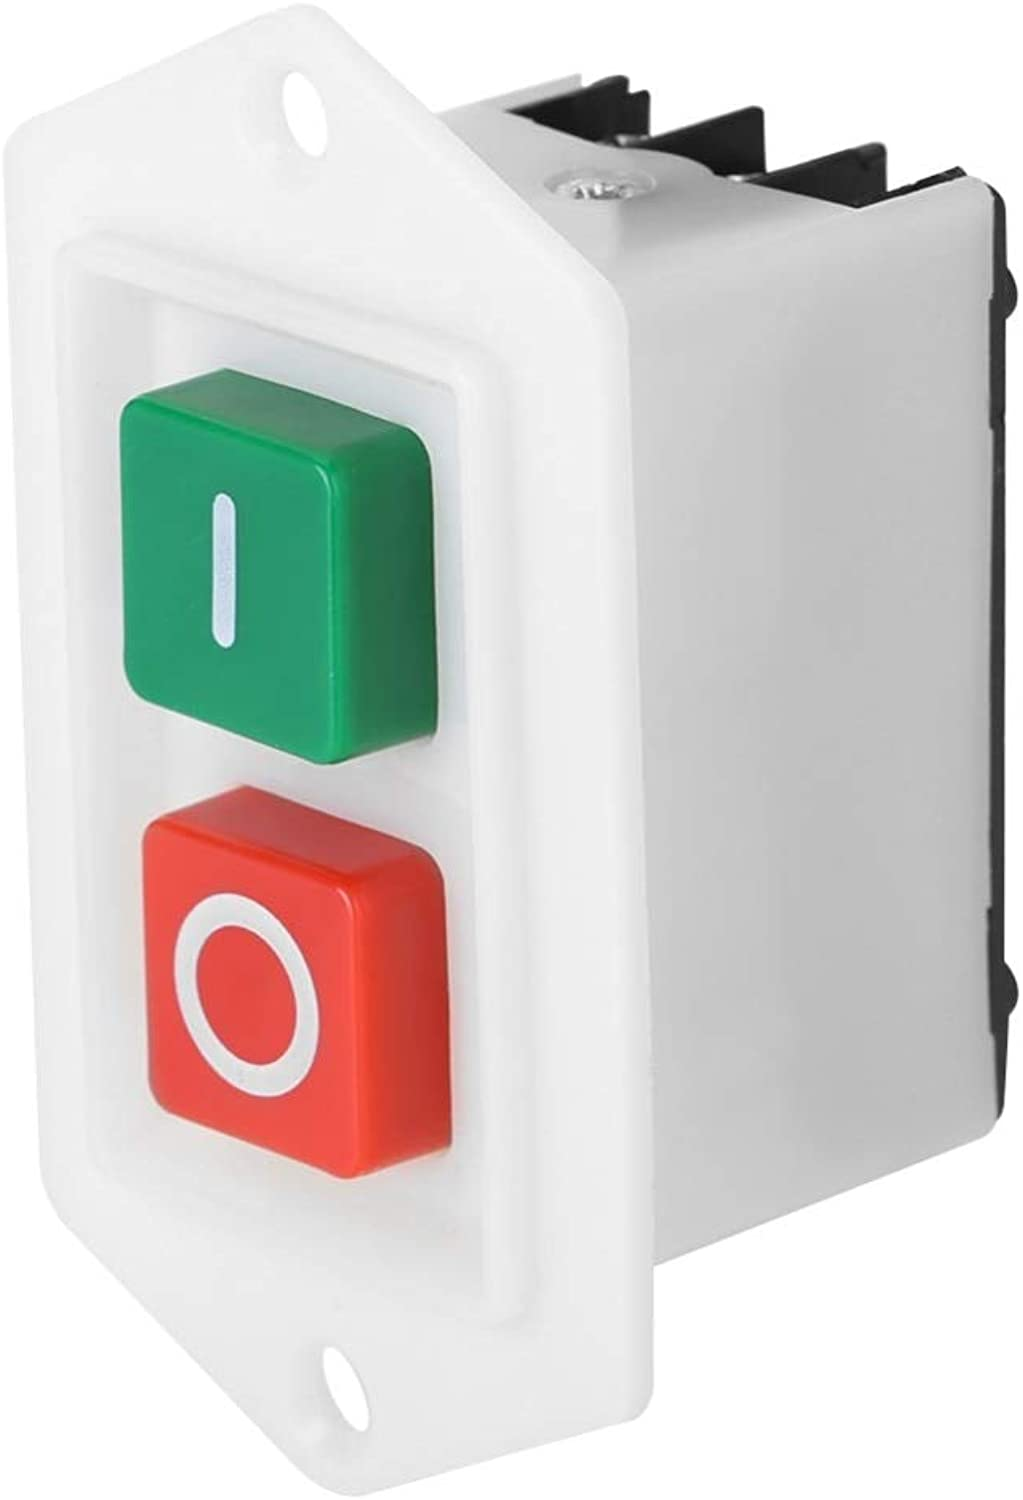 New 10Pcs LC310 SelfLocking Power On Off Switch AC 220V 10A Start Stop Push Button Switch